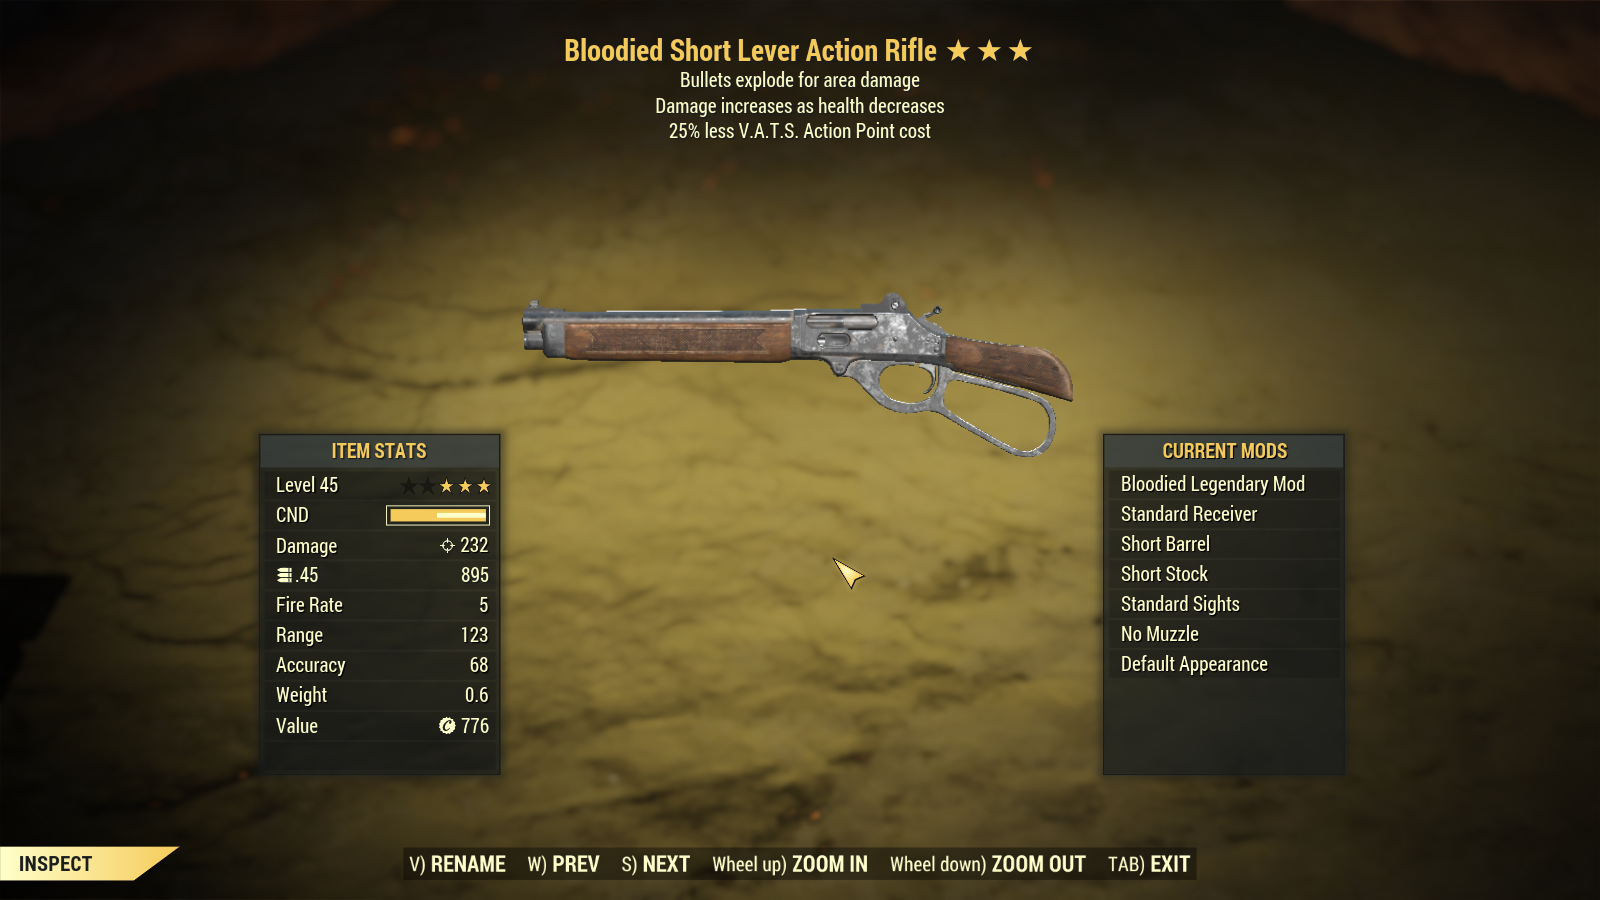 Bloodied Explosive Lever Action Rifle 25% Less VATS